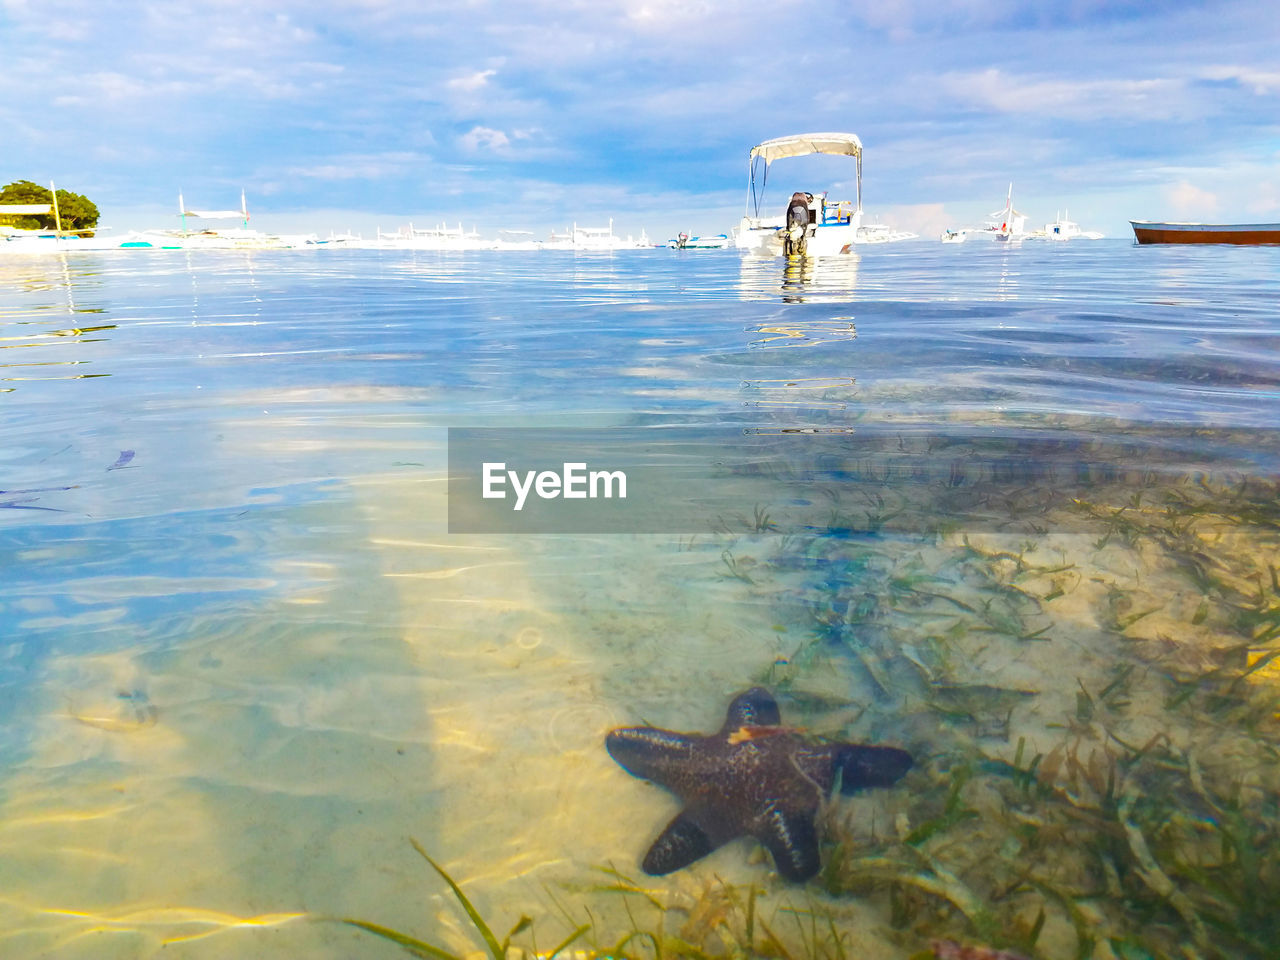 VIEW OF FISH IN SEA